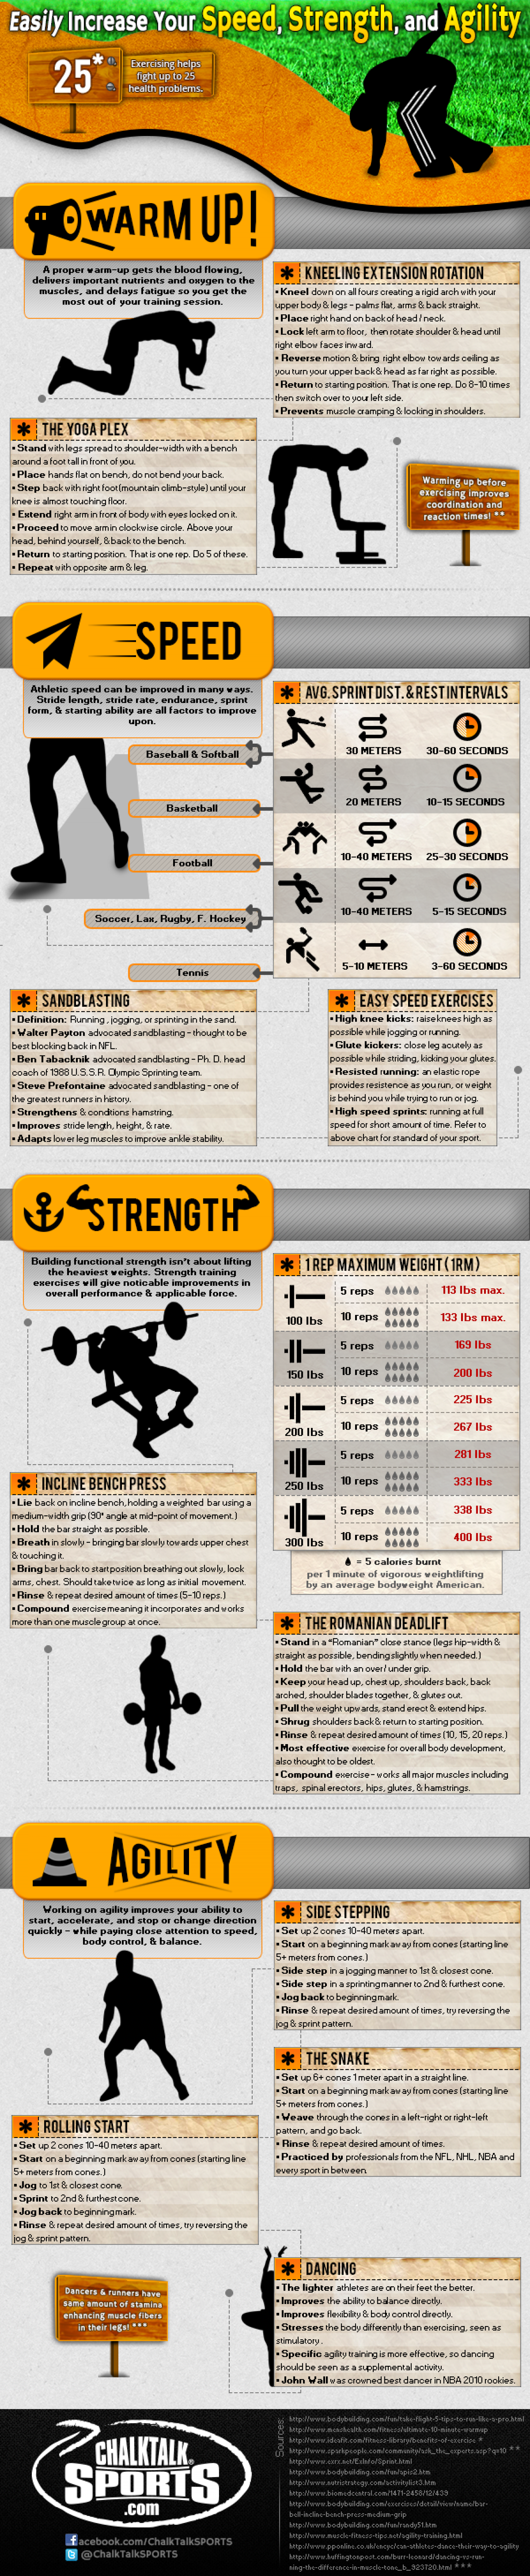 Easily Increase Your Speed, Strength, & Agility Infographic